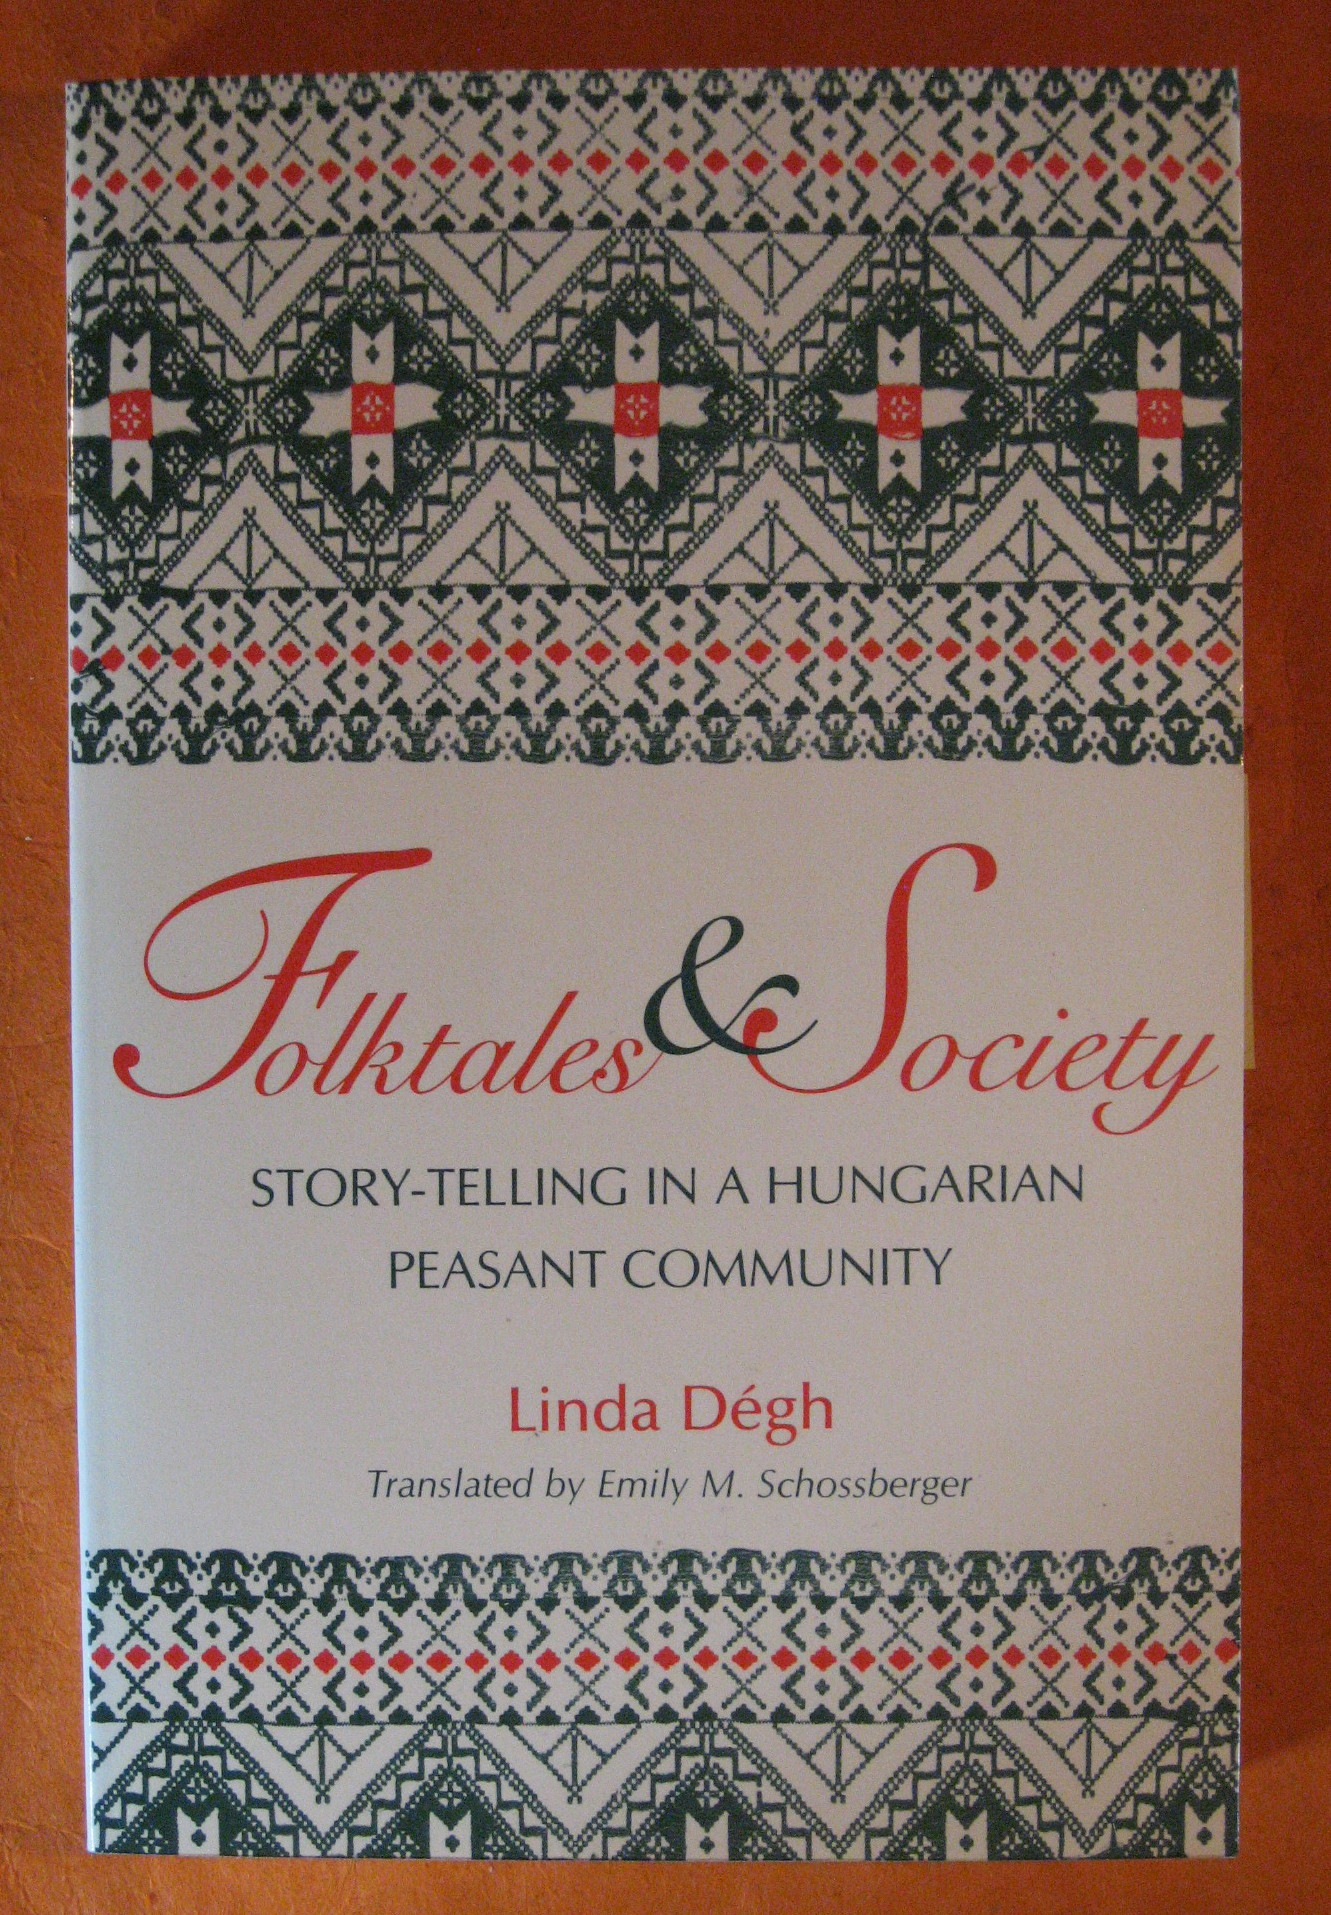 Image for Folktales and Society: Story-Telling in a Hungarian Peasant Community (A Midland Book)